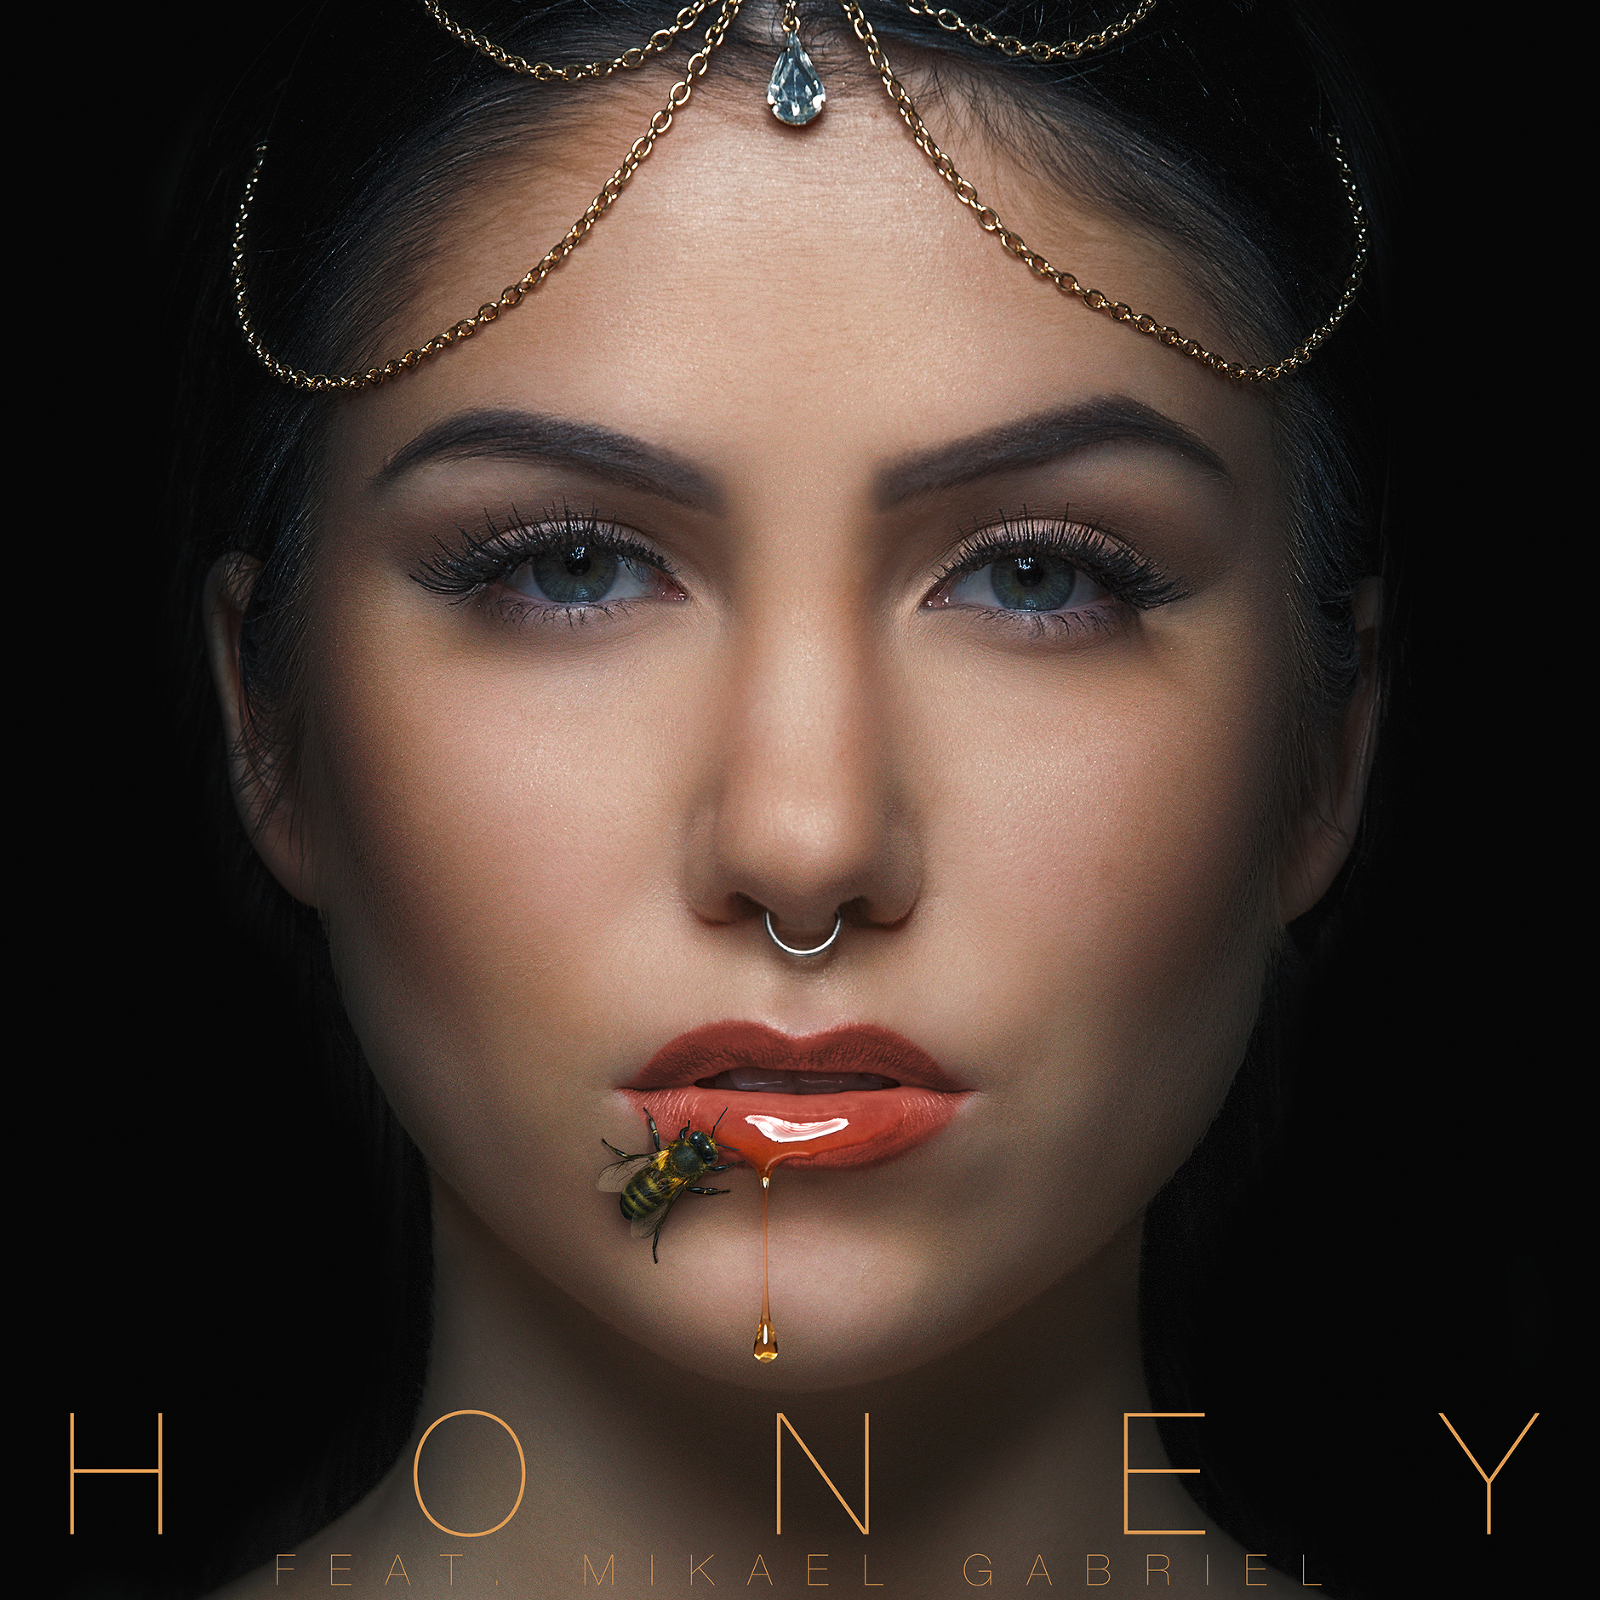 Evelina - Honey -singlen kansi